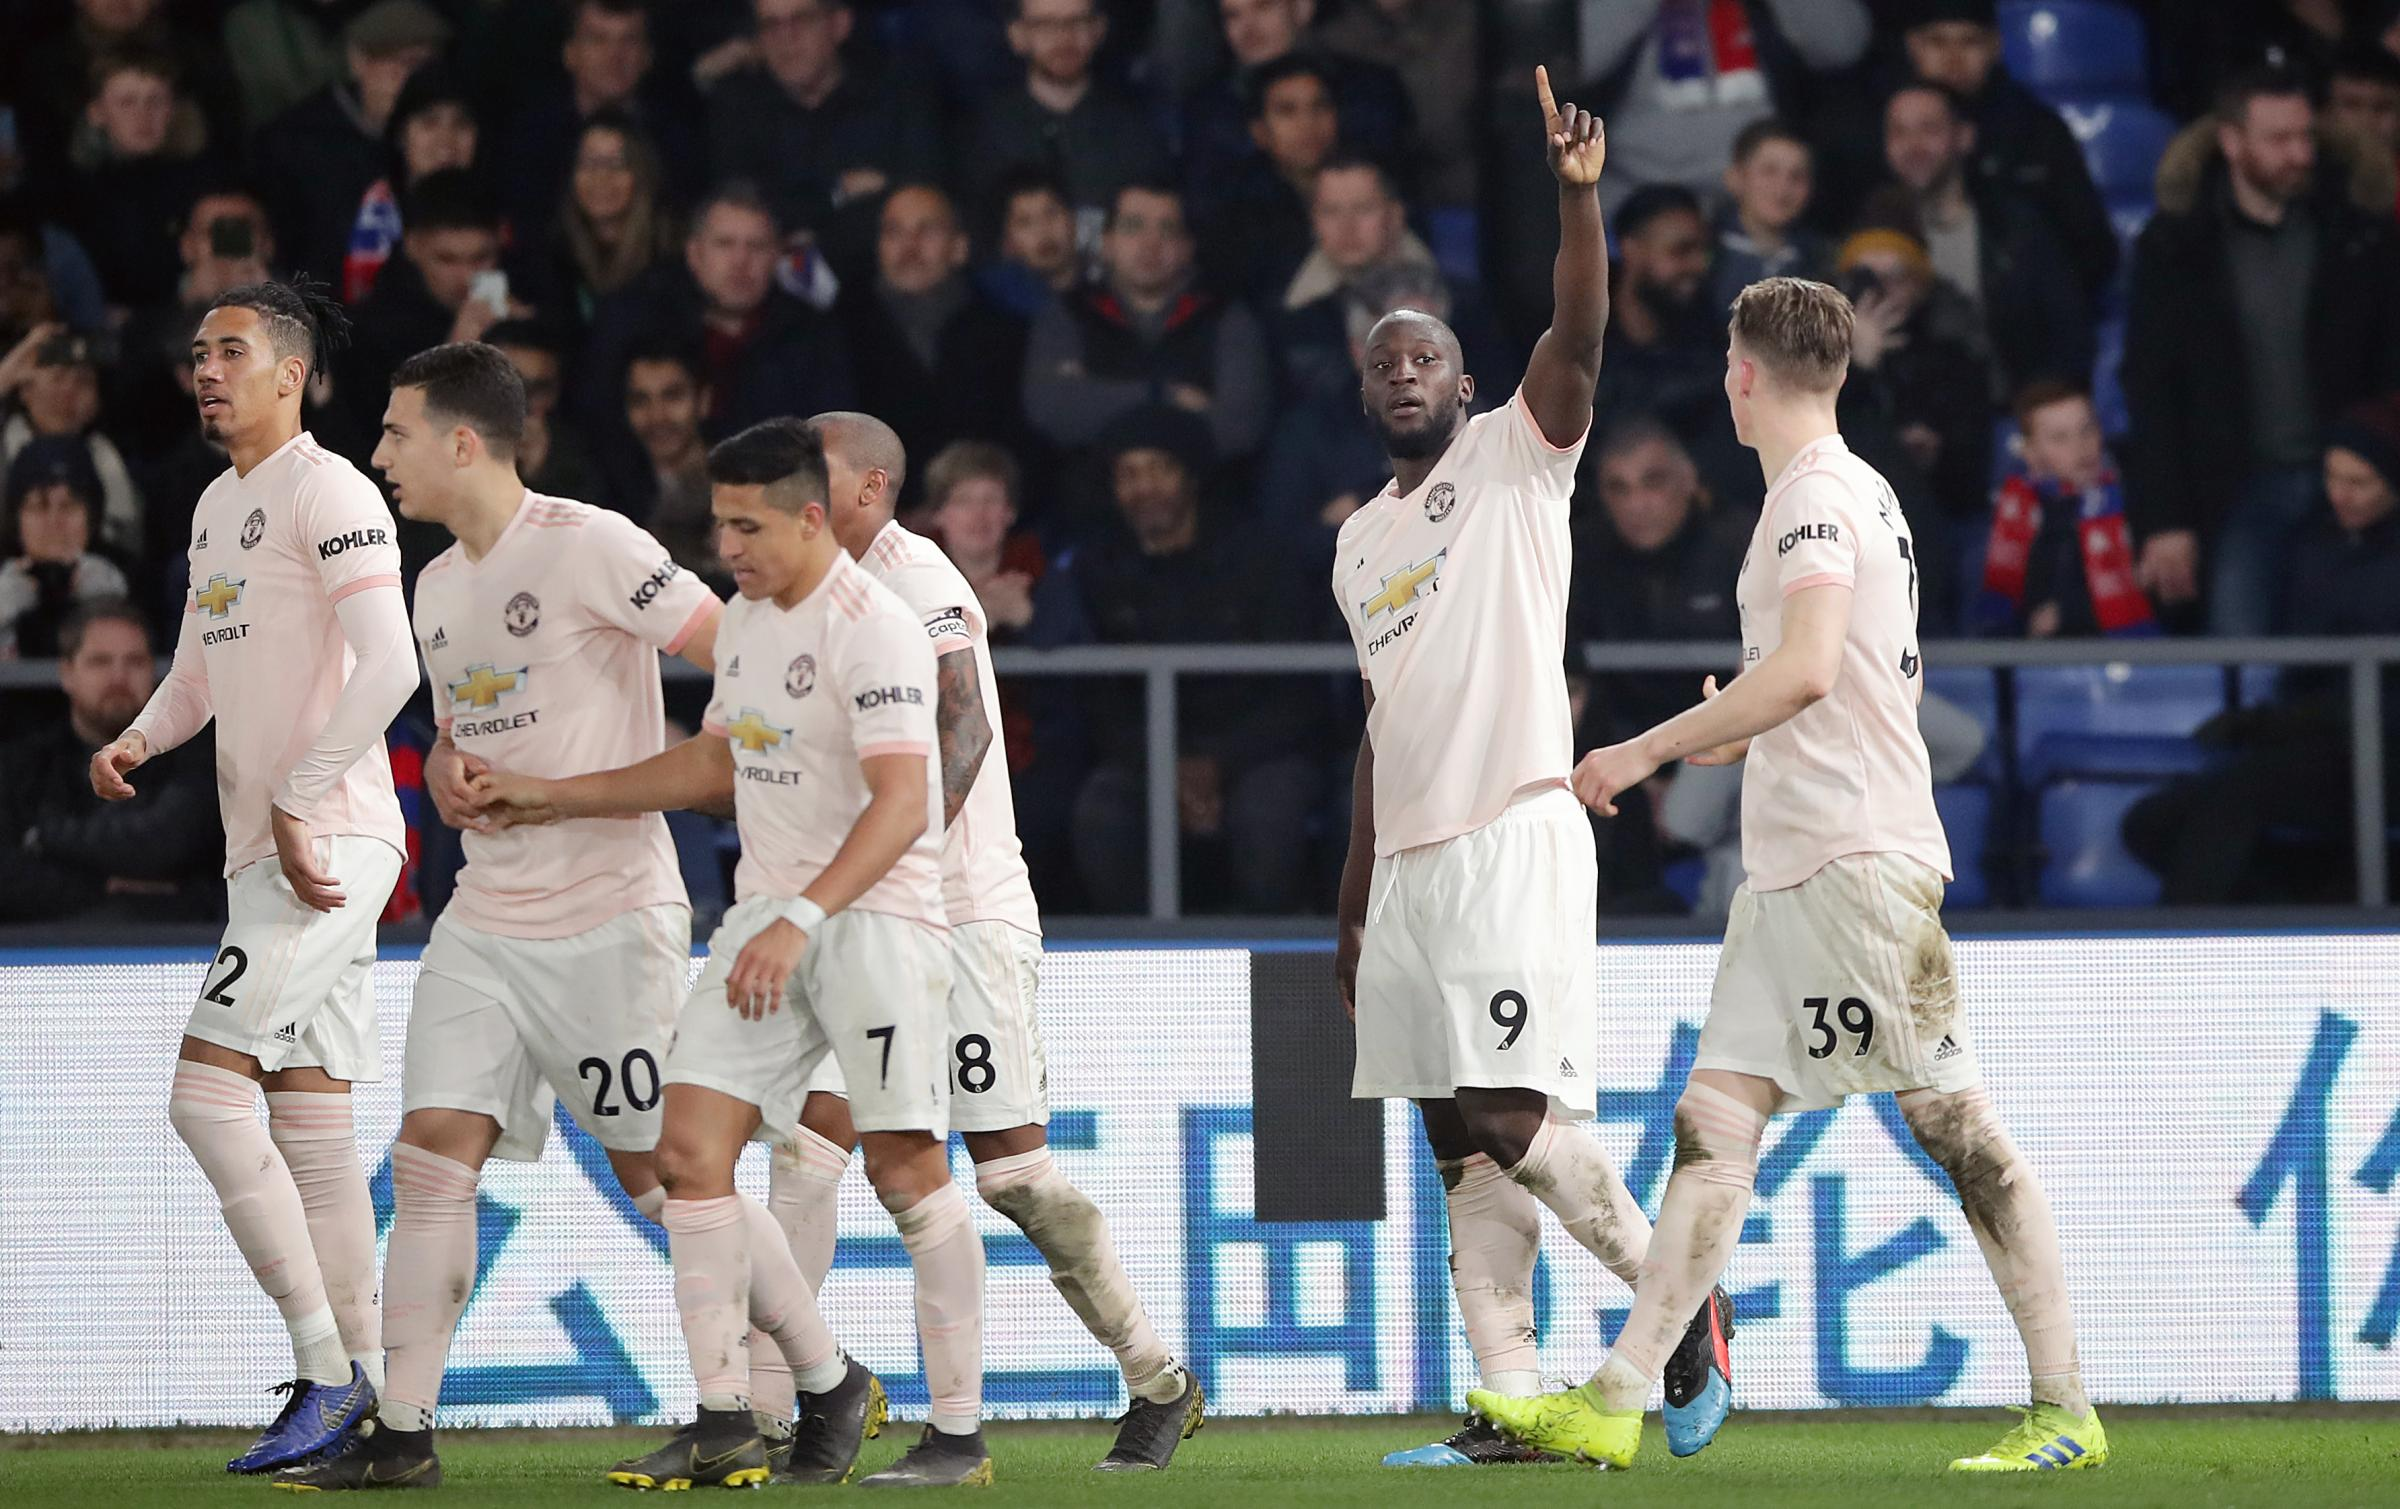 Manchester United's Romelu Lukaku (second right) celebrates scoring his side's second goal of the game during the Premier League match at Selhurst Park, London.(Photo credit: John Walton/PA Wire.)